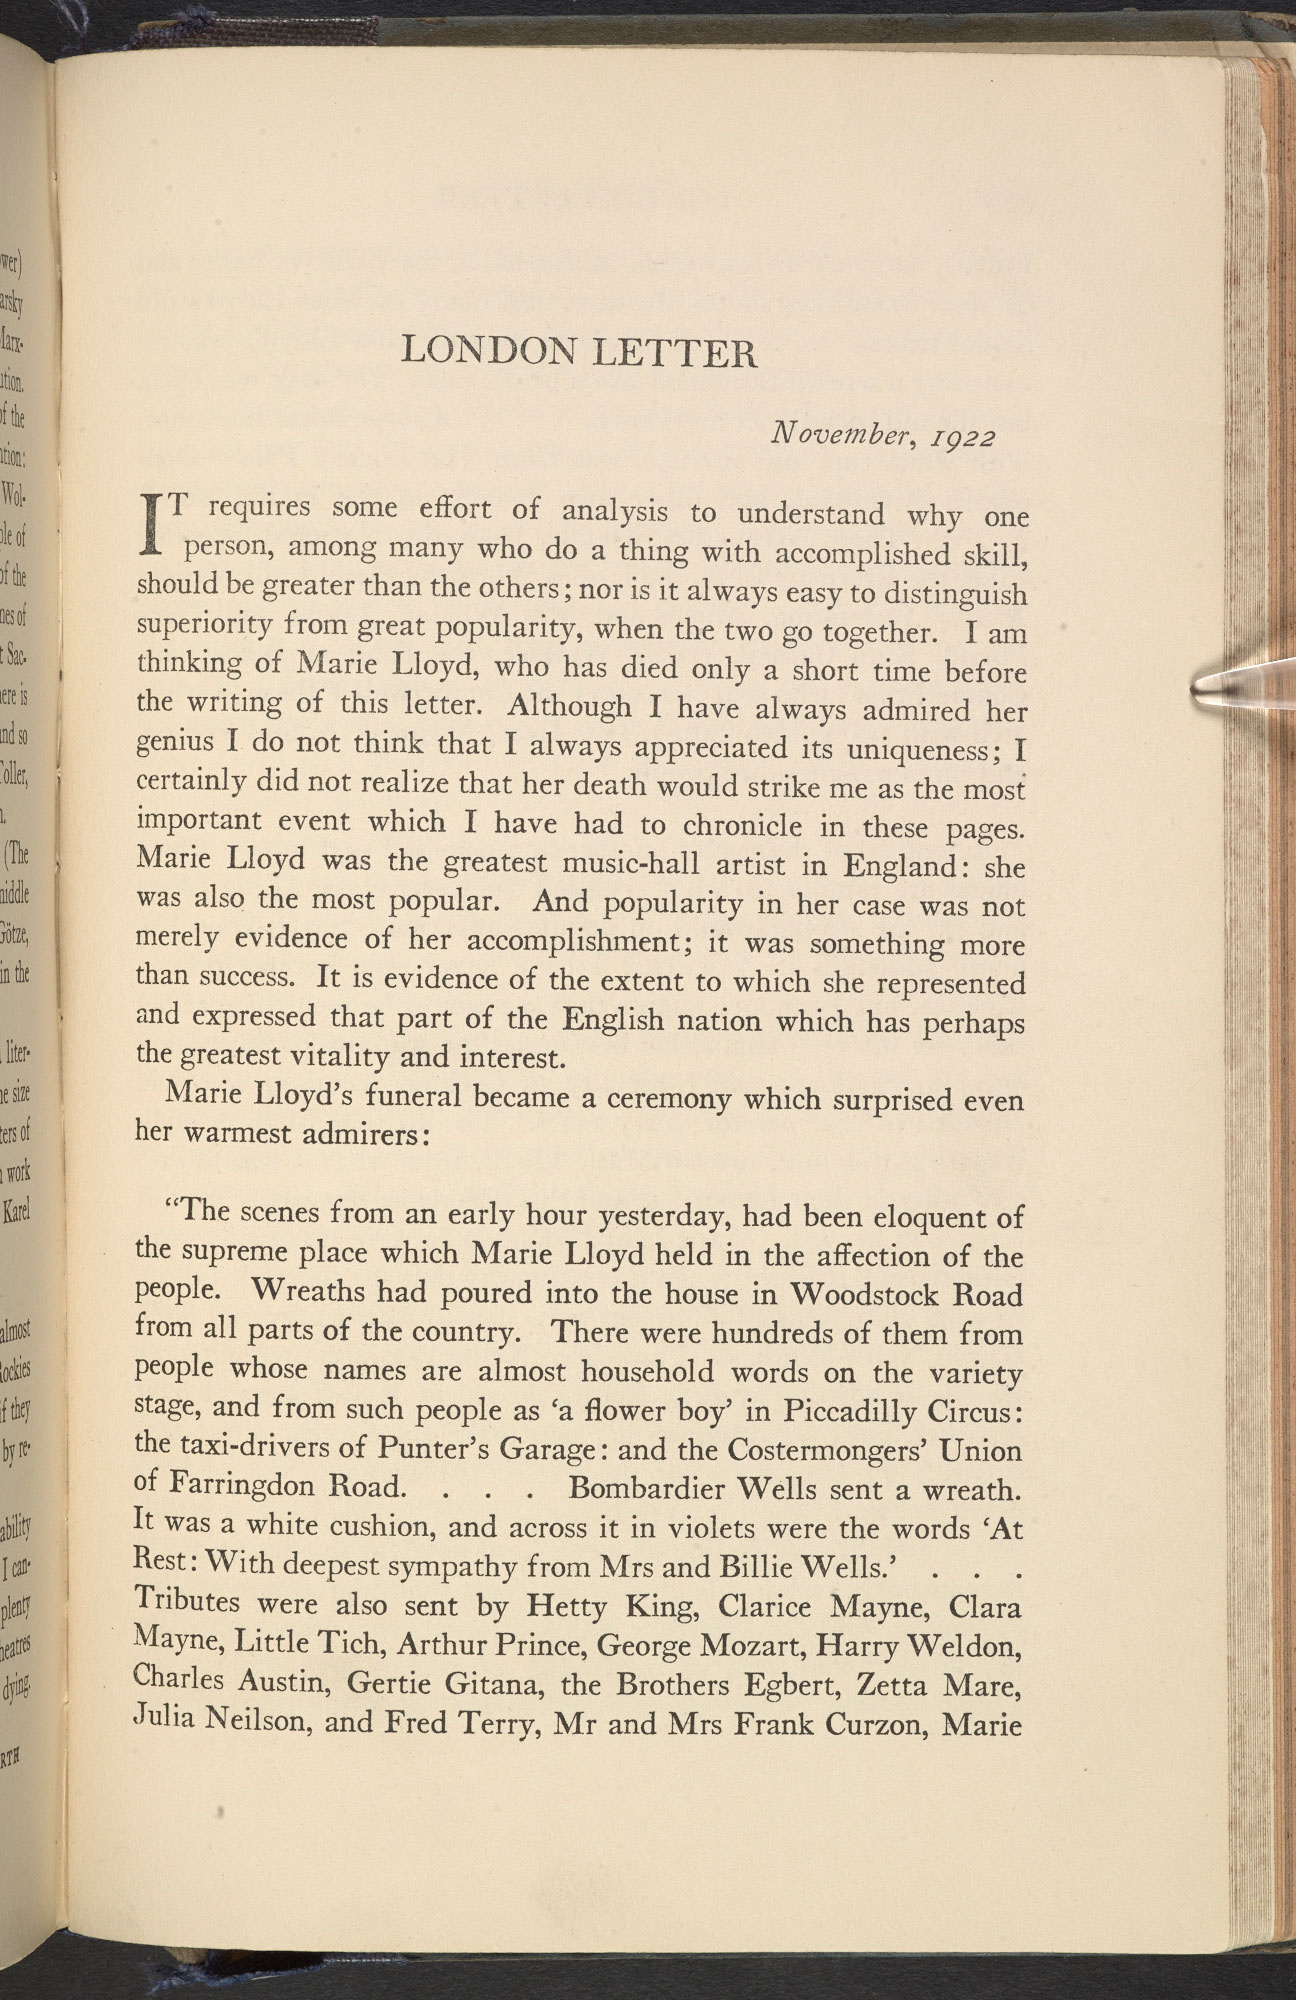 London Letter' by T S Eliot, published in The Dial